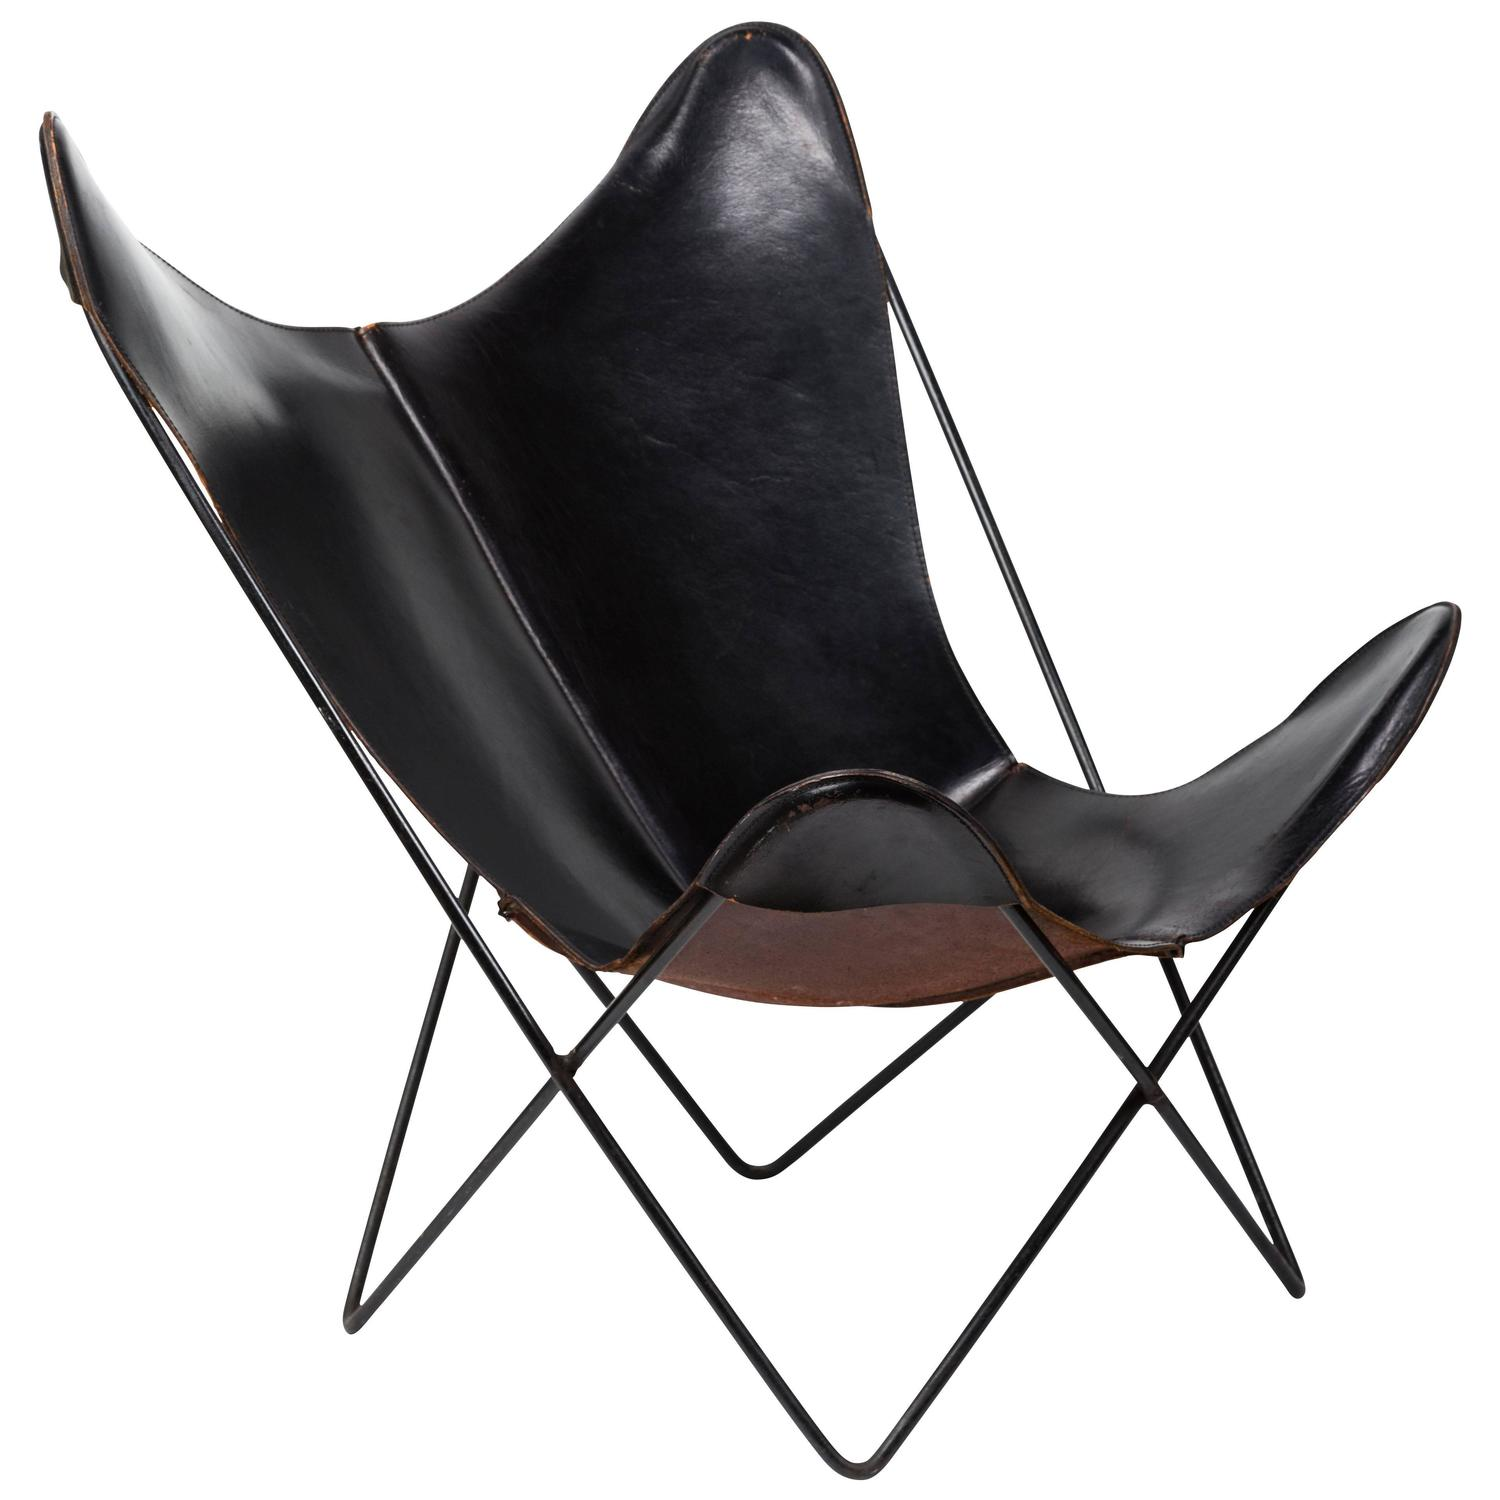 leather butterfly chair by jorge ferrari hardoy for knoll for sale at 1stdibs. Black Bedroom Furniture Sets. Home Design Ideas